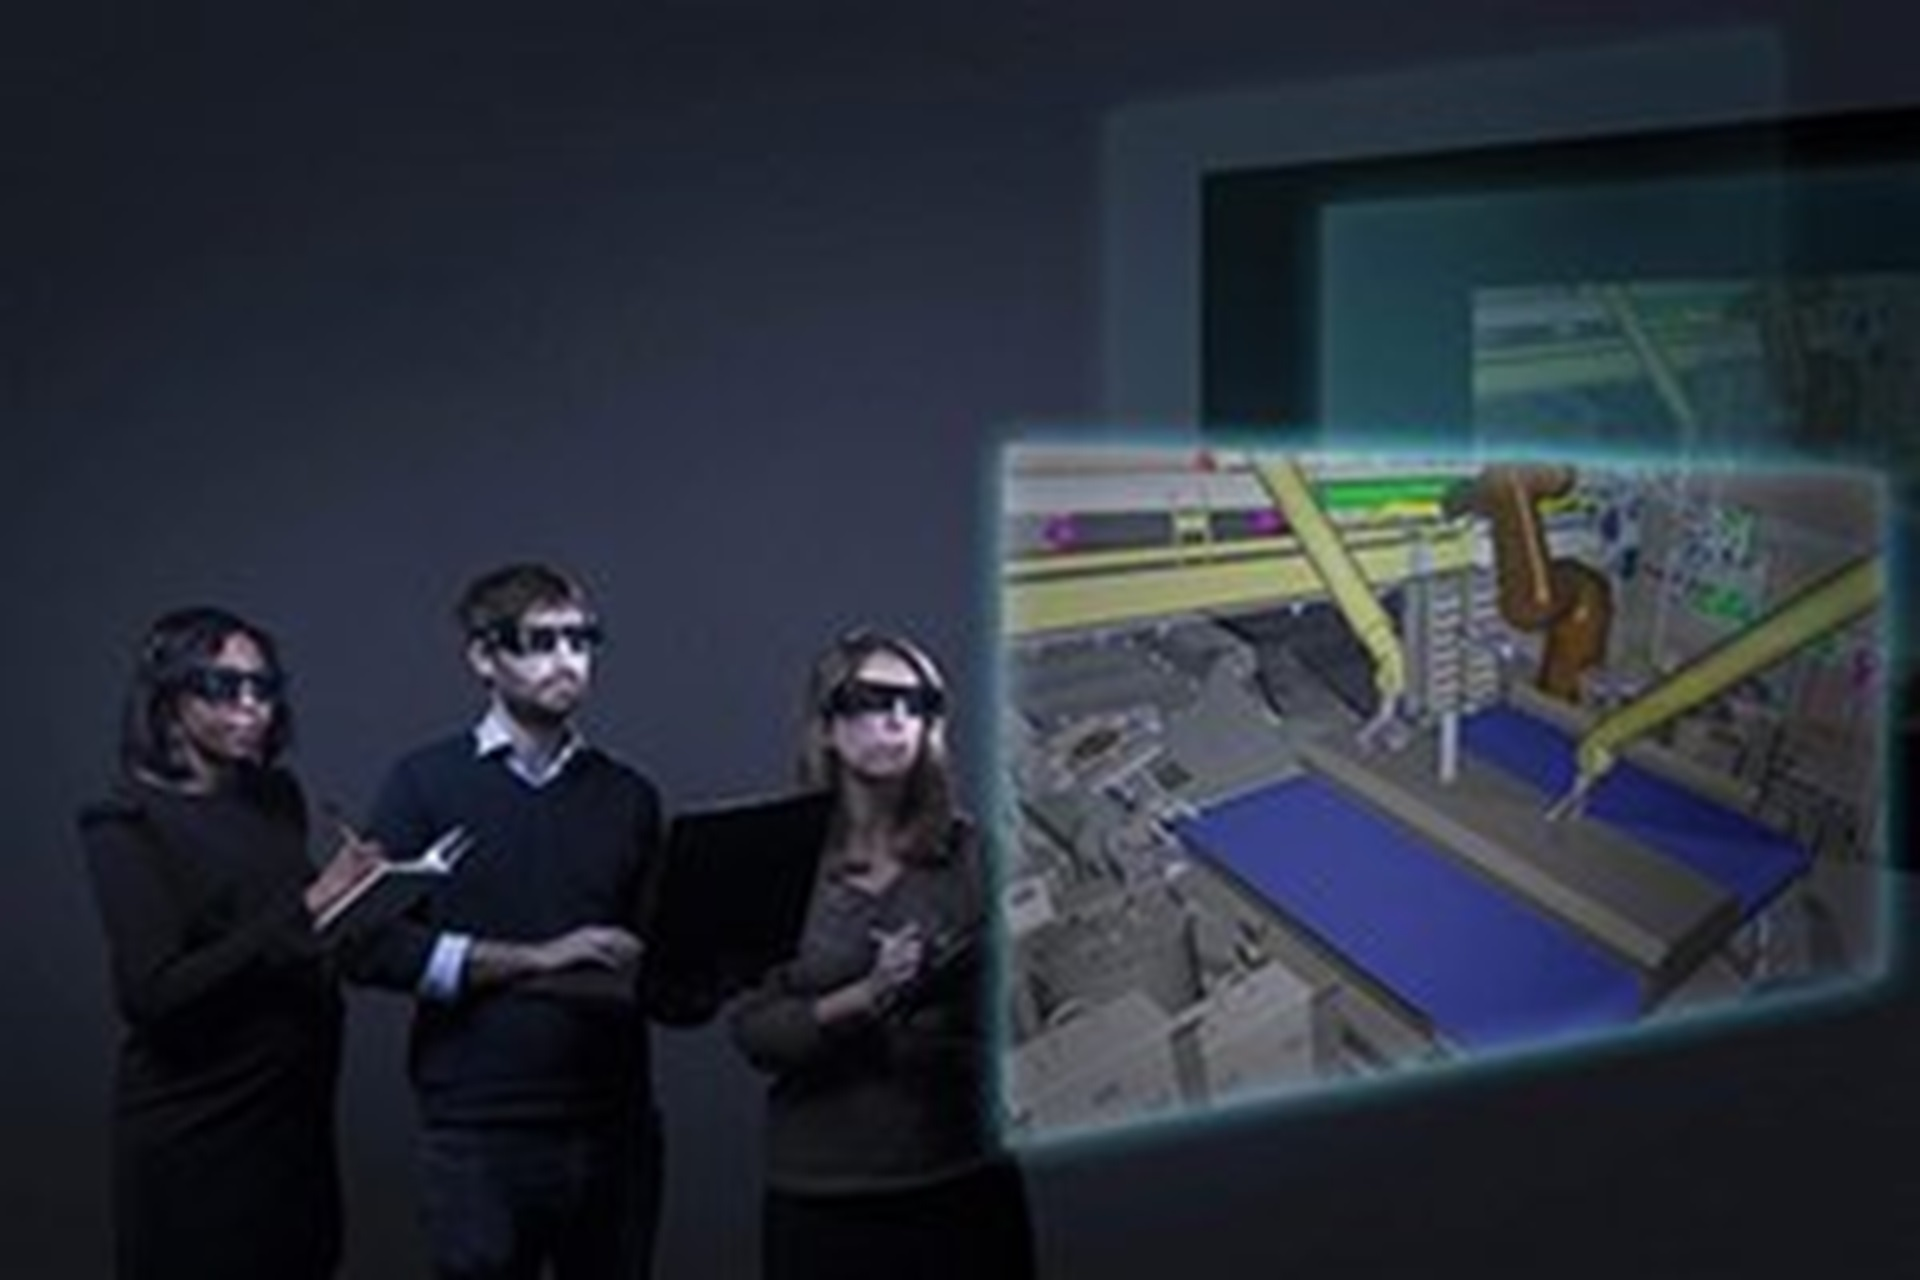 Man and woman using augmented reality in order to manipulate, observe and analyze engineering projects.